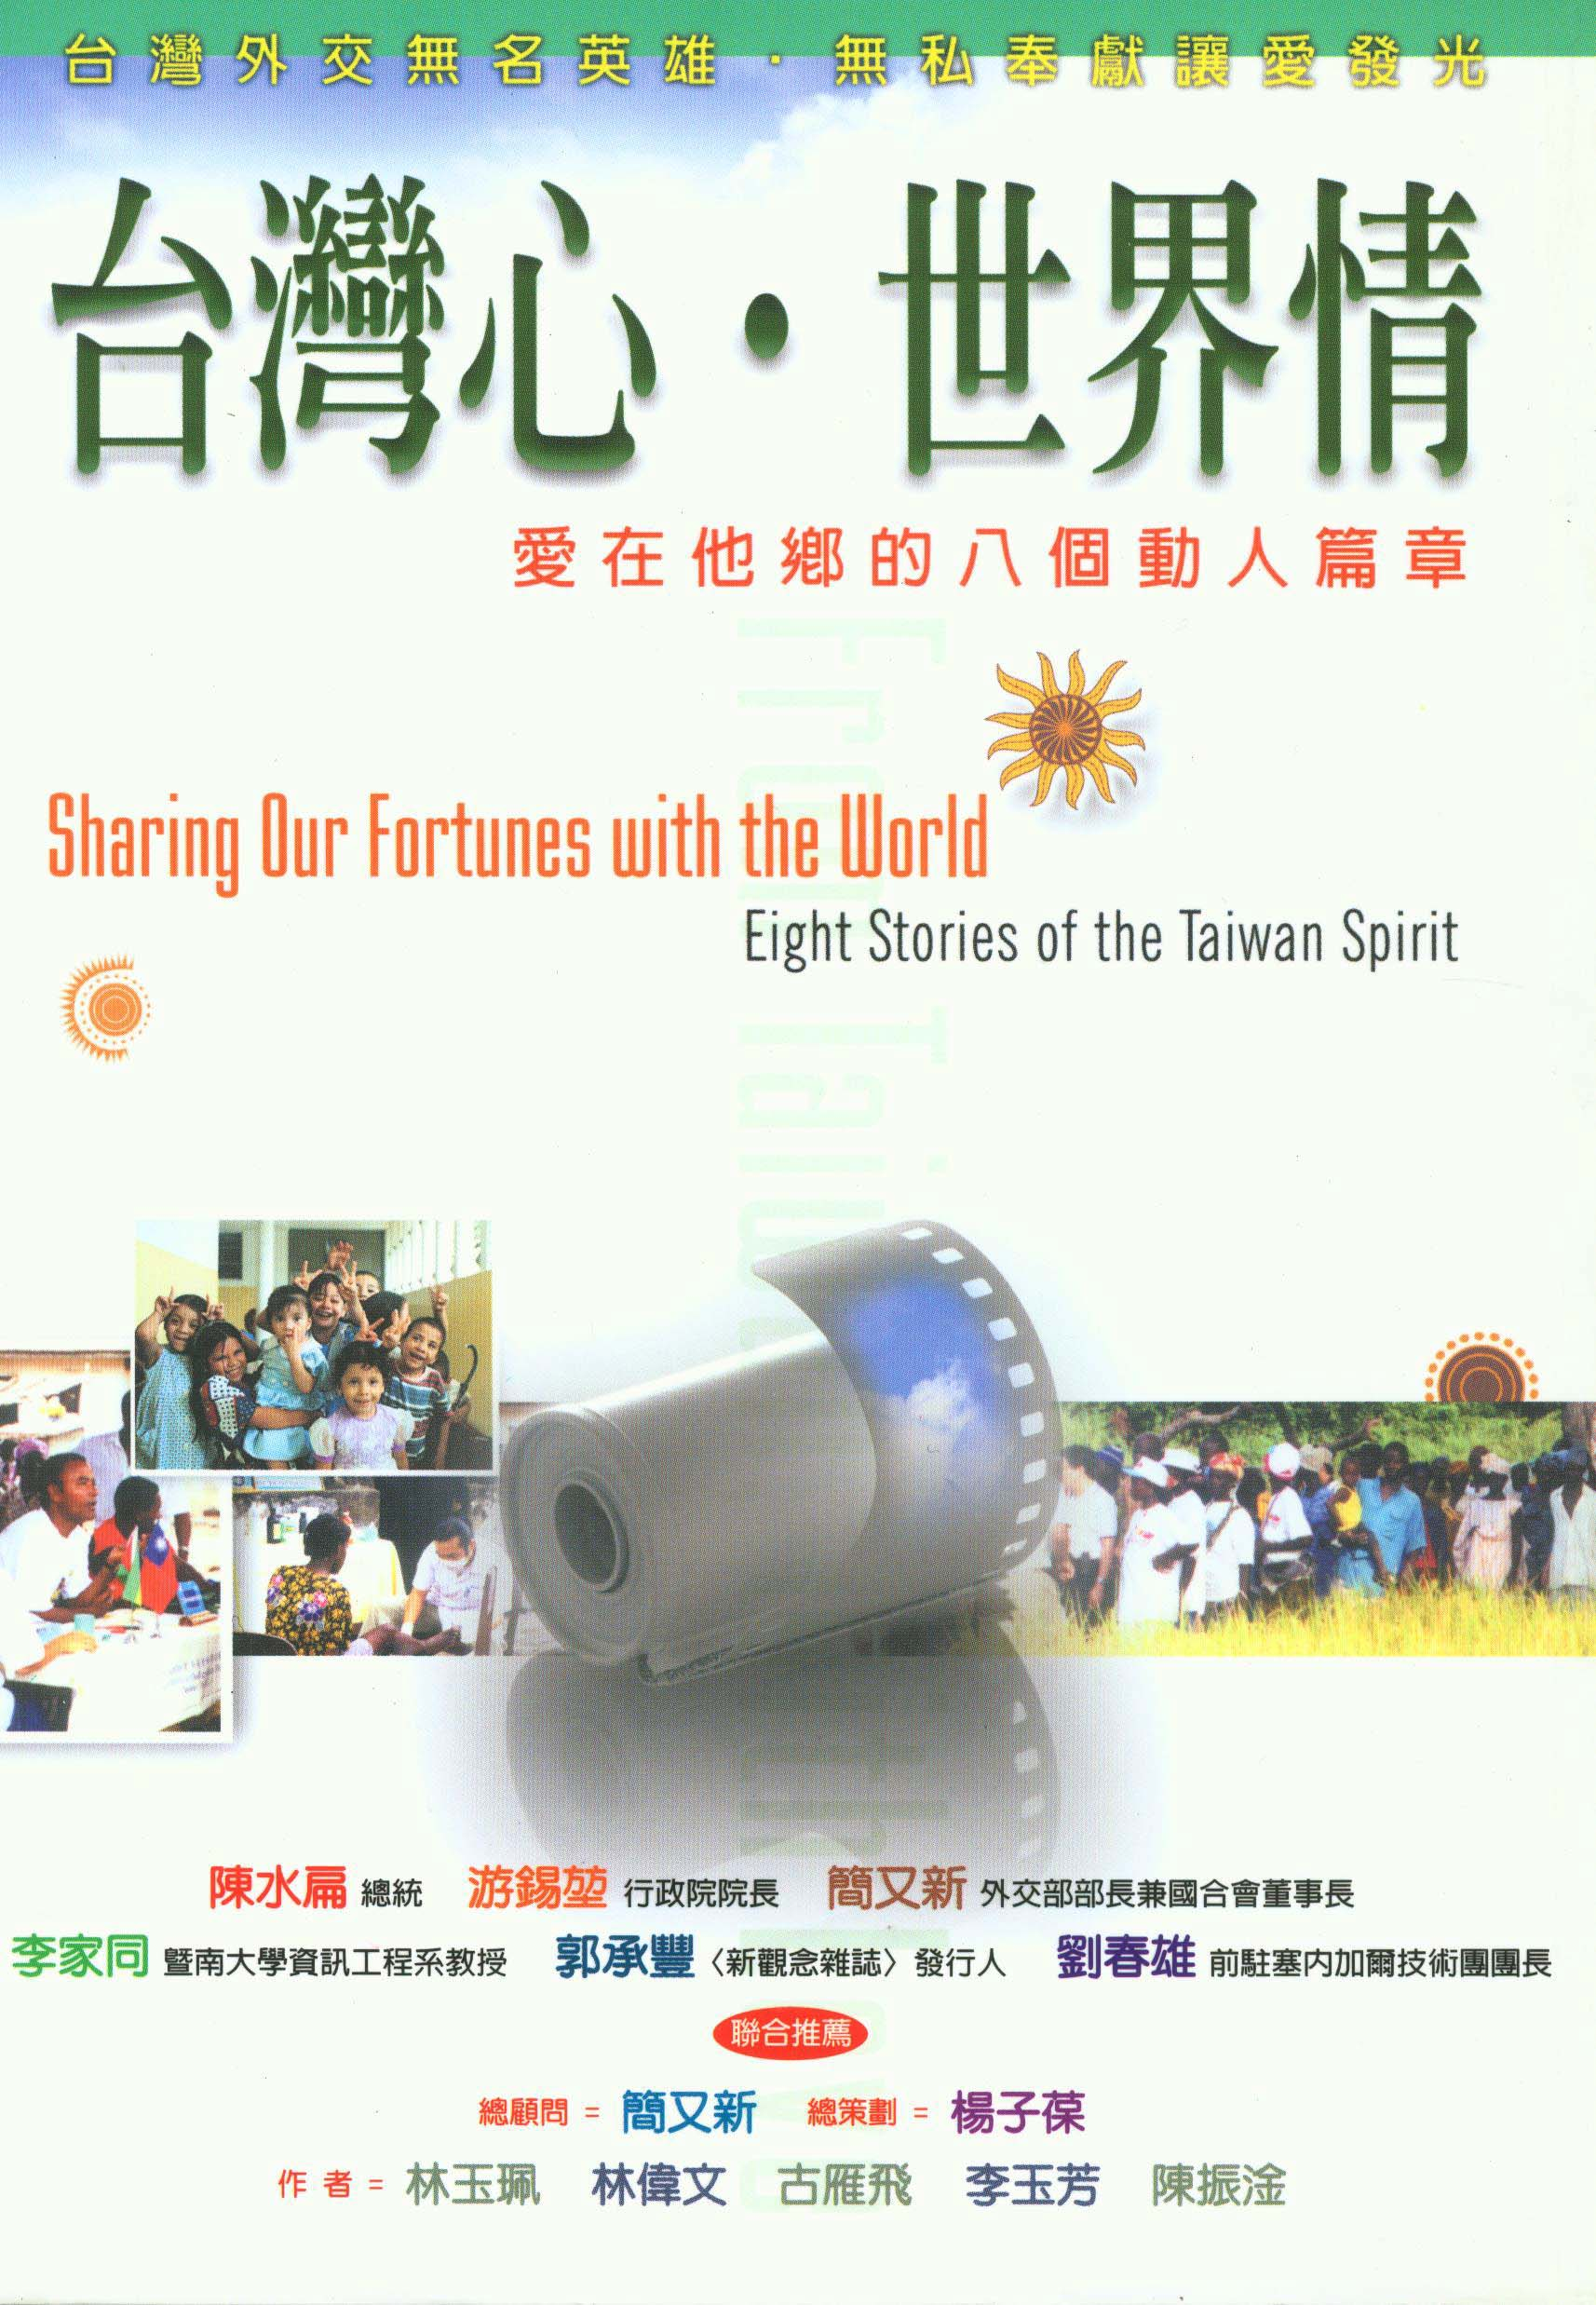 Sharing Our Fortunes with the World: Eight Stories of the Taiwan Spirit